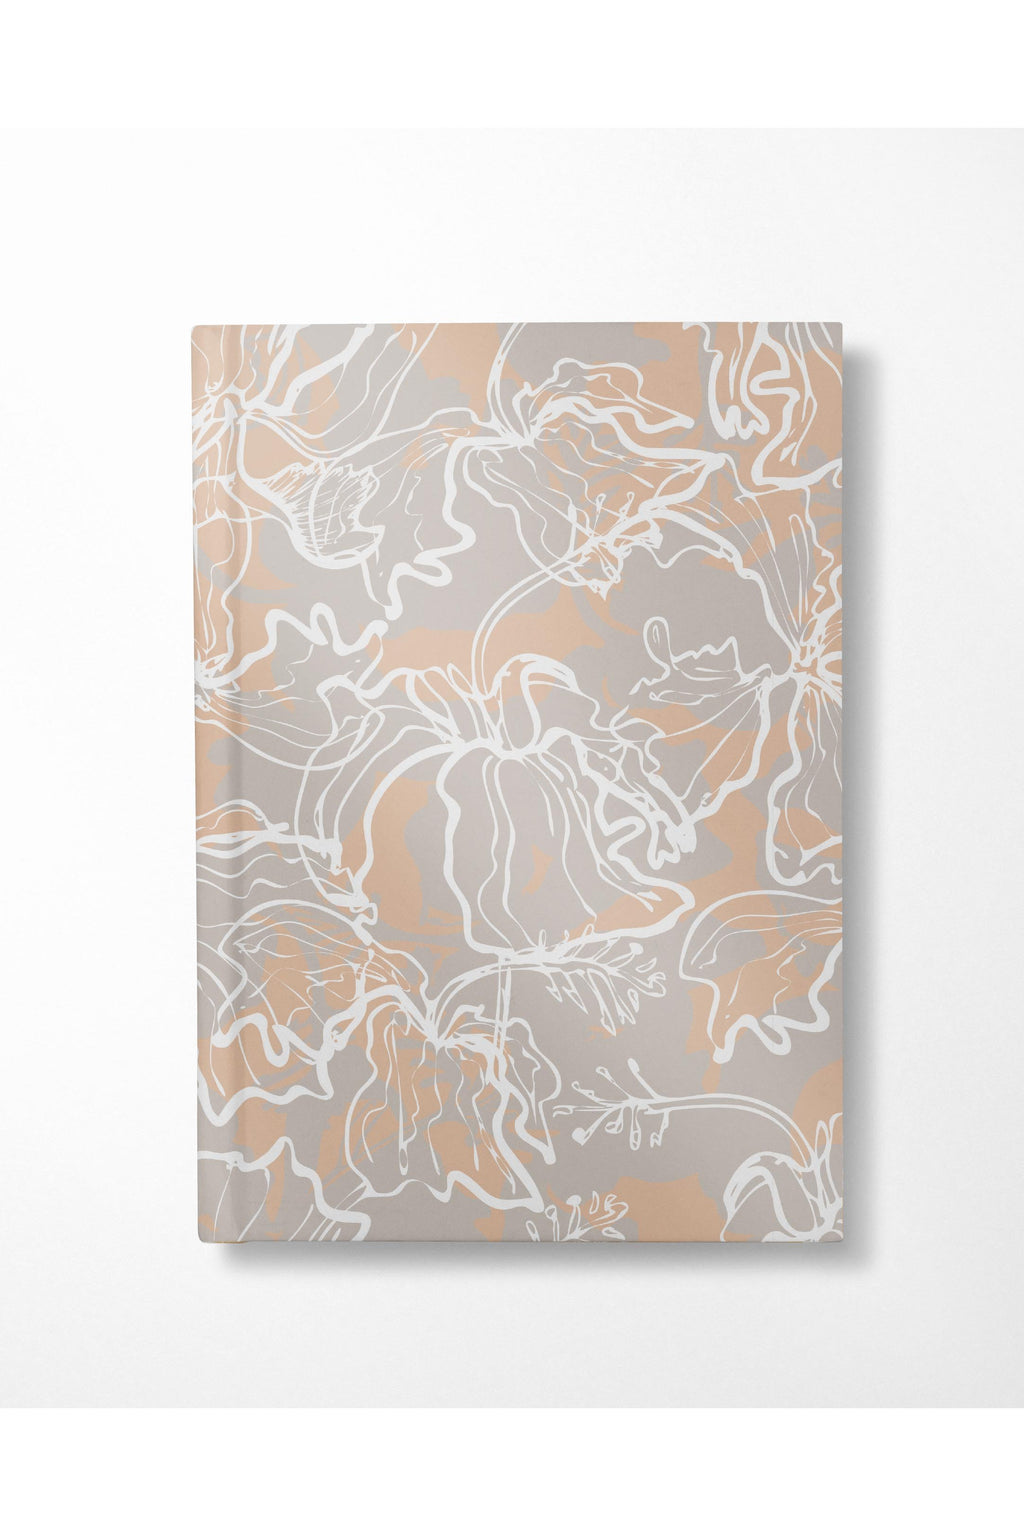 Hibiscus Notebook - Sand - Hausofassembly